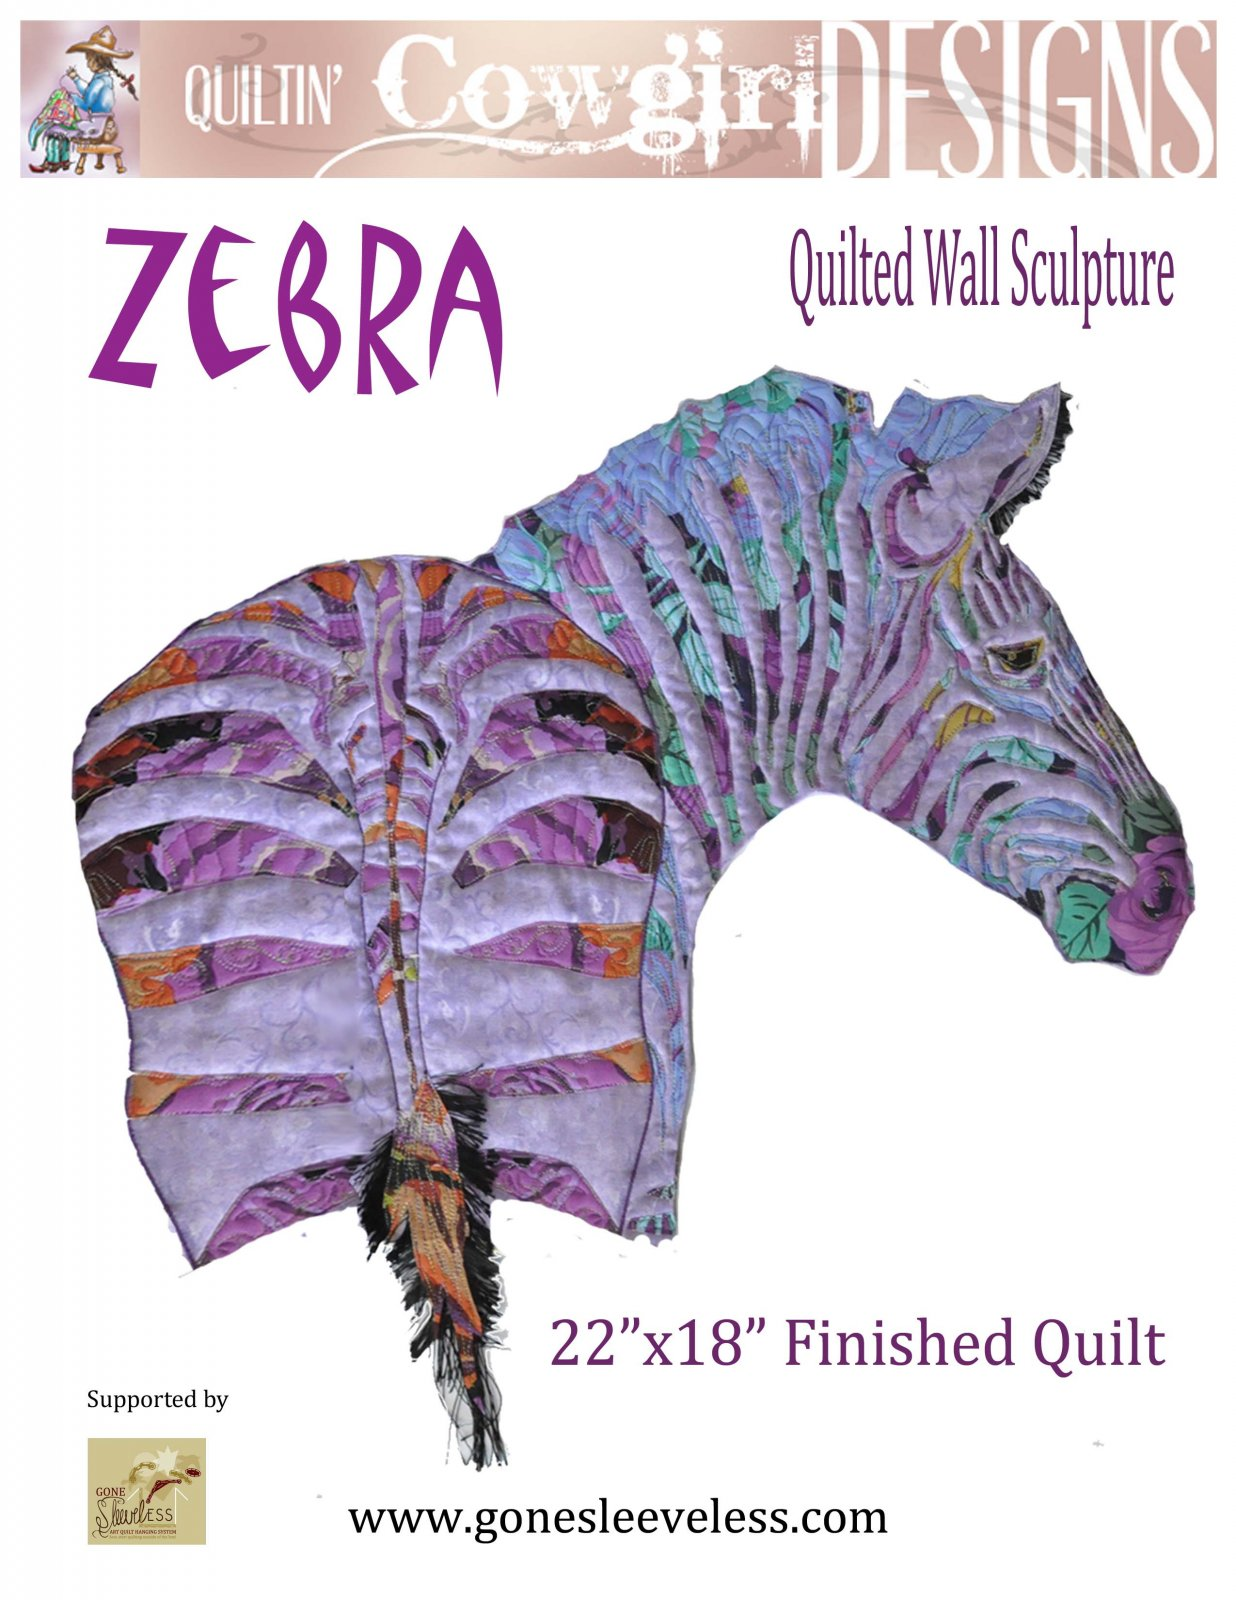 ZEBRA QUILTED WALL SCULPTURE